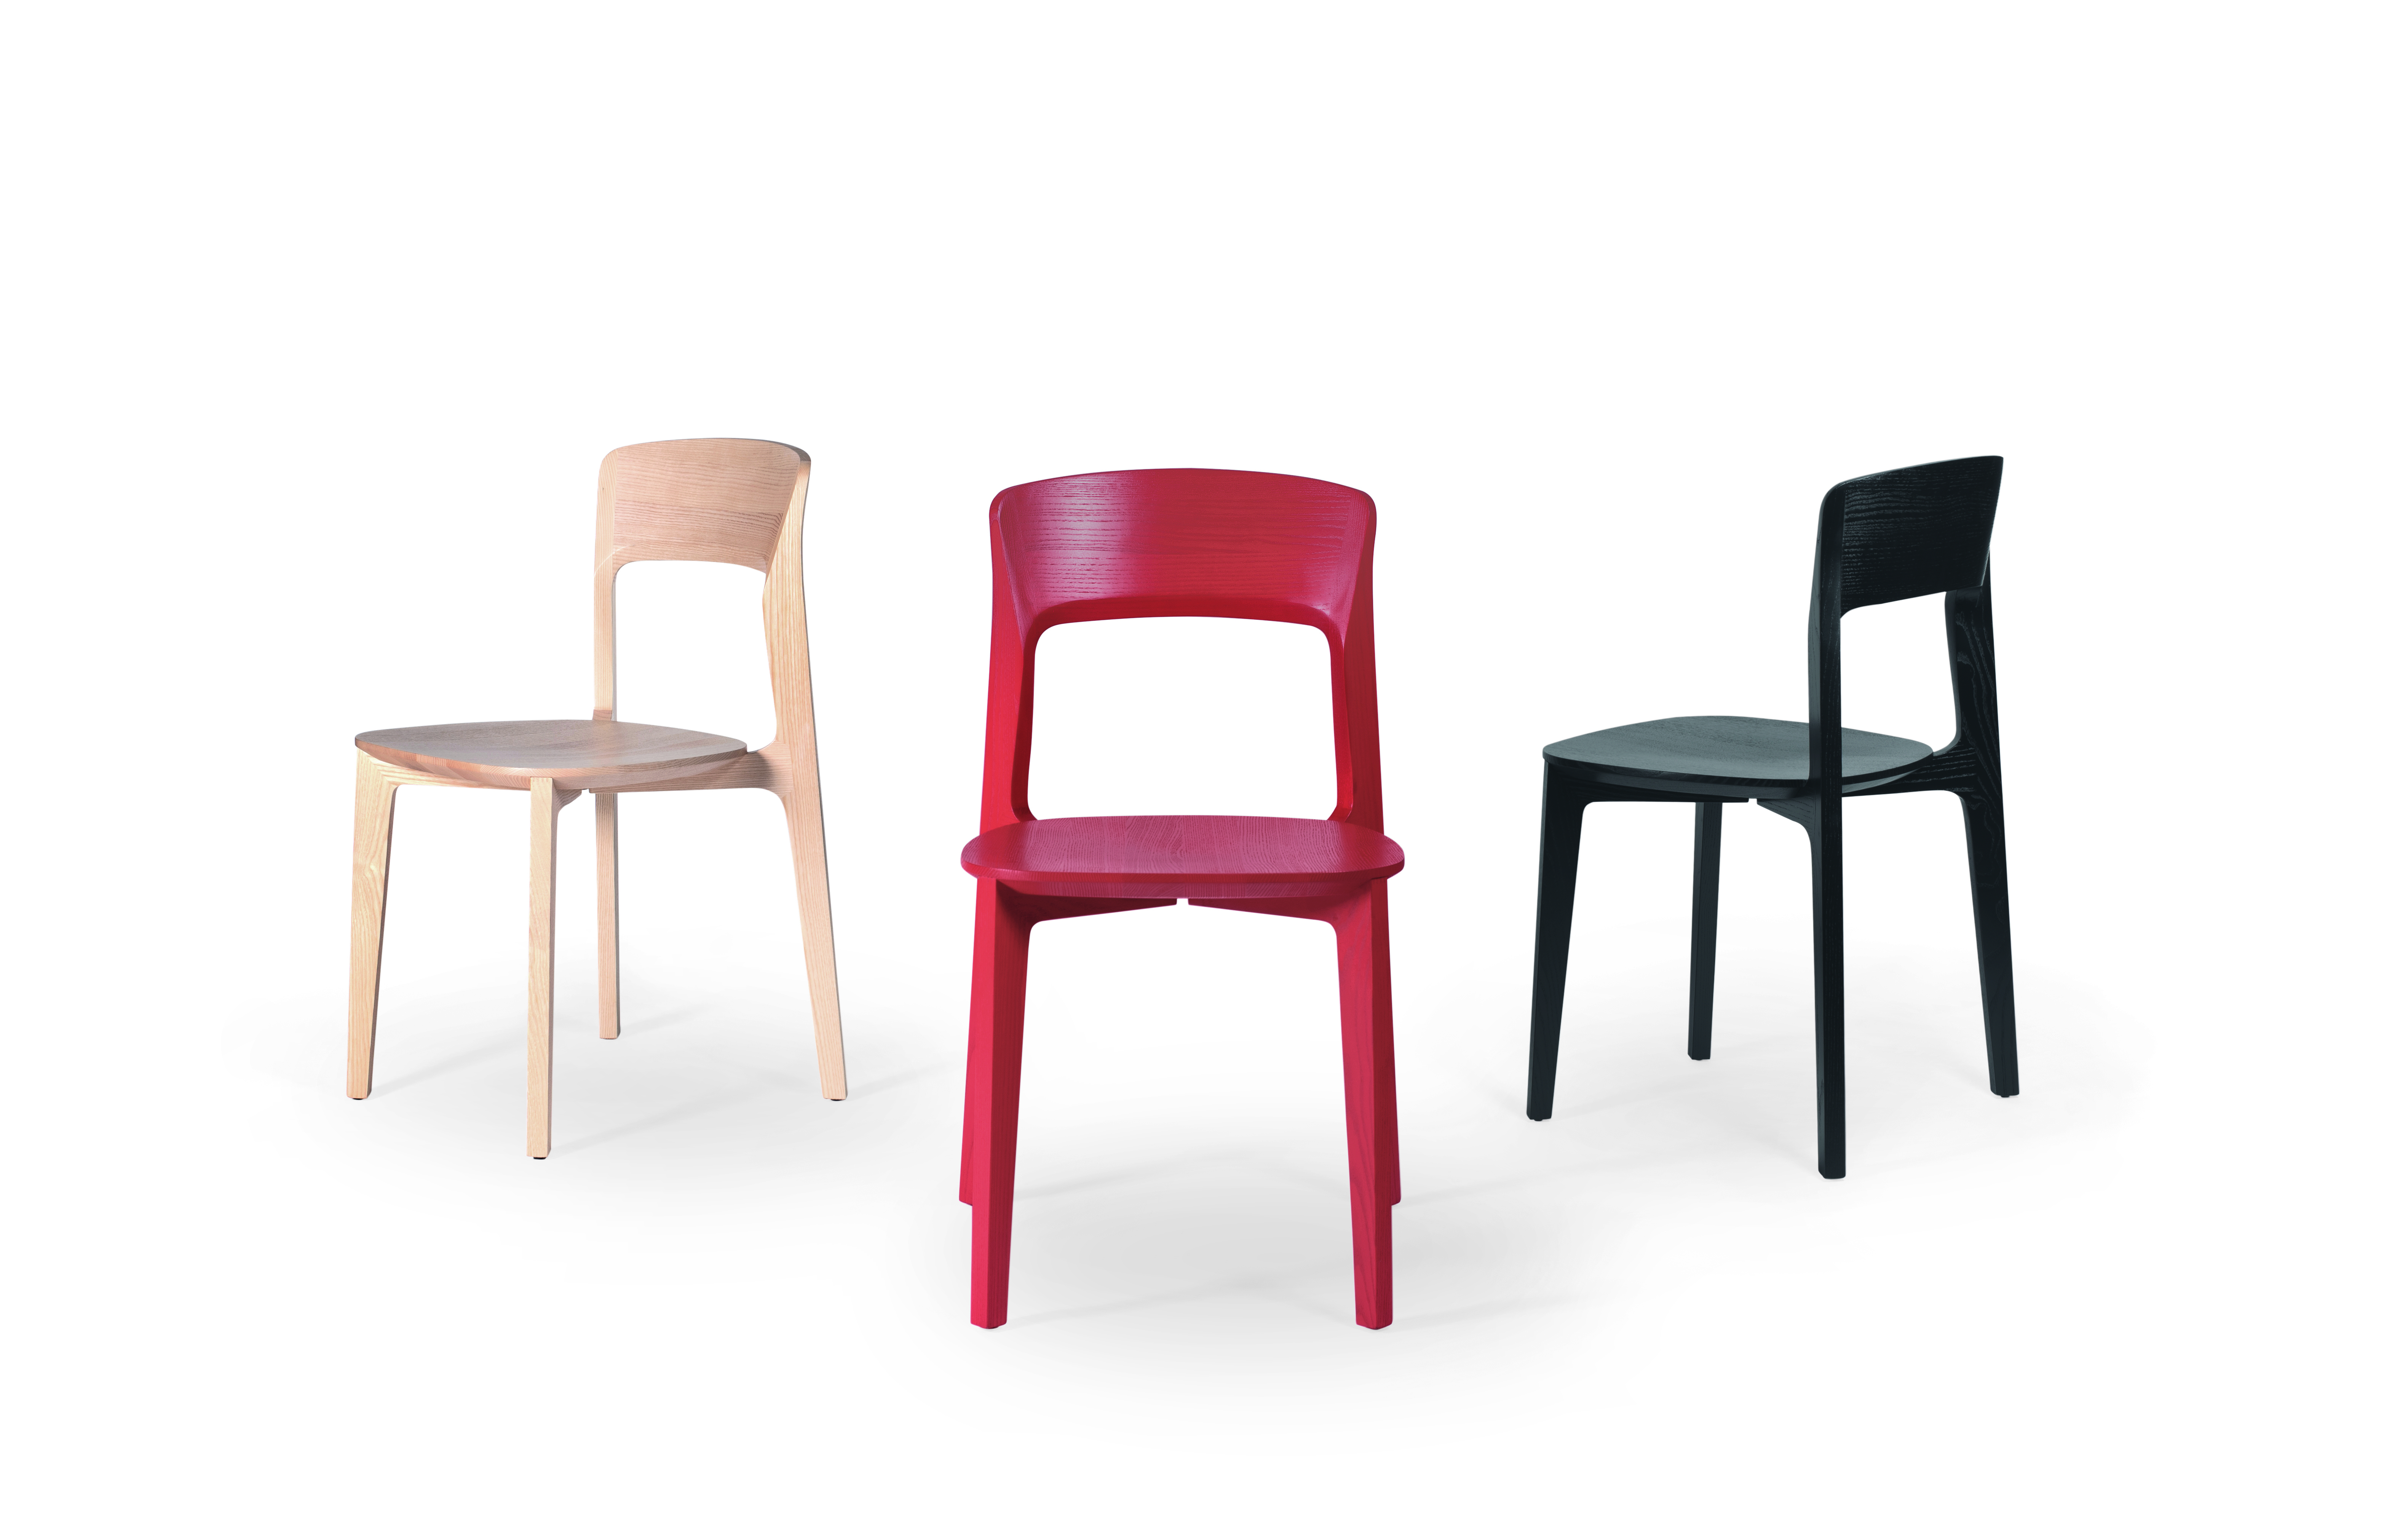 Chairs made from sustainability sourced timber